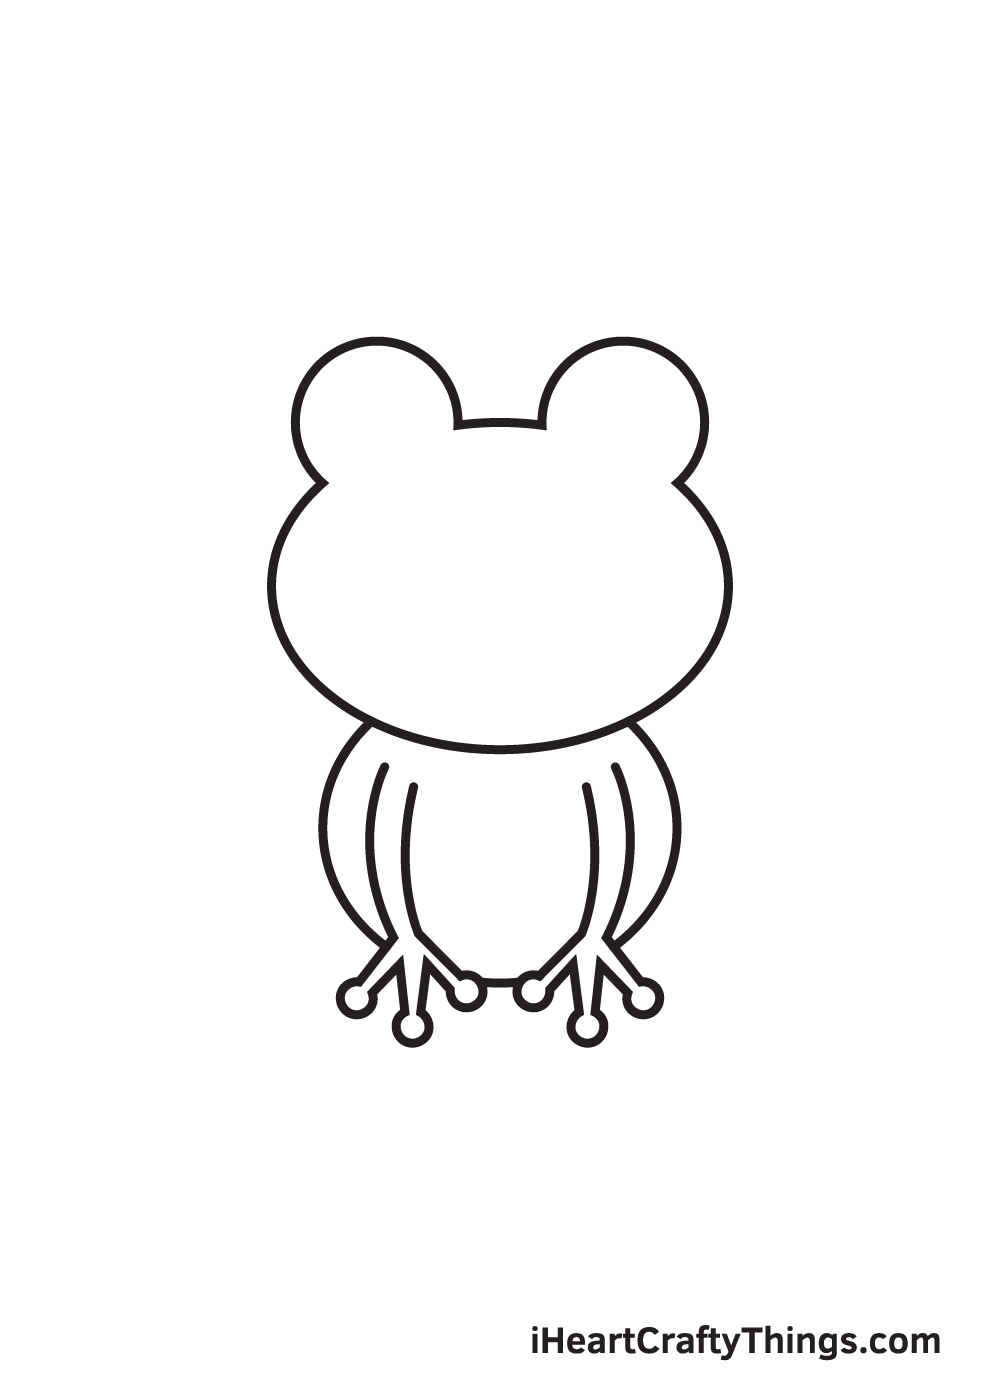 Frog Drawing – Step 4